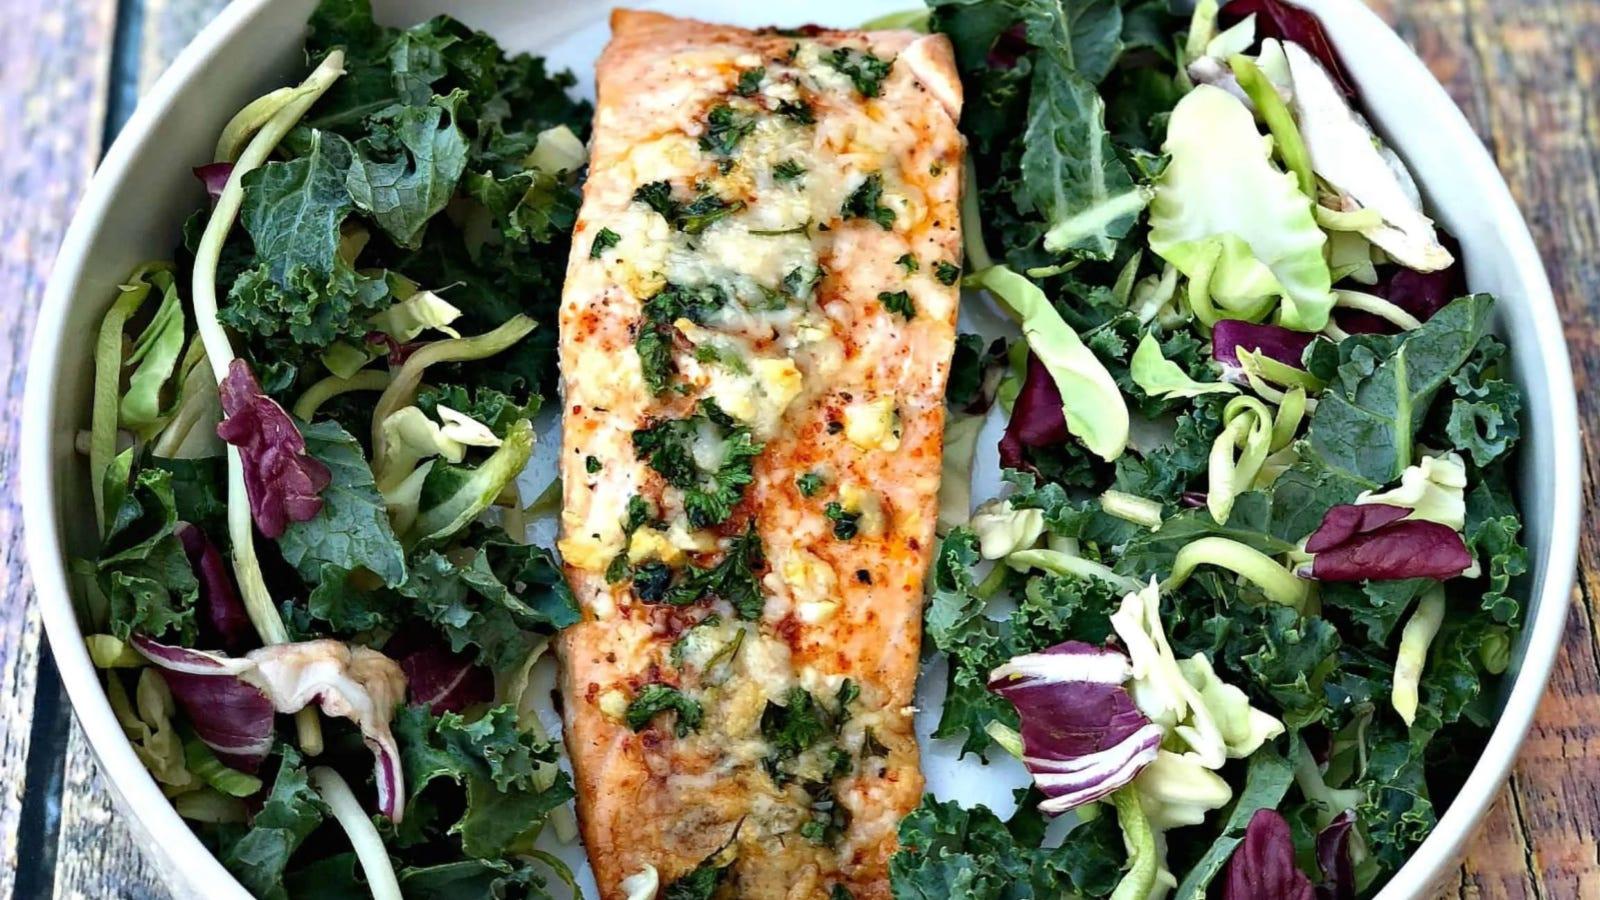 Parmesan herb crusted salmon served with fresh greens.